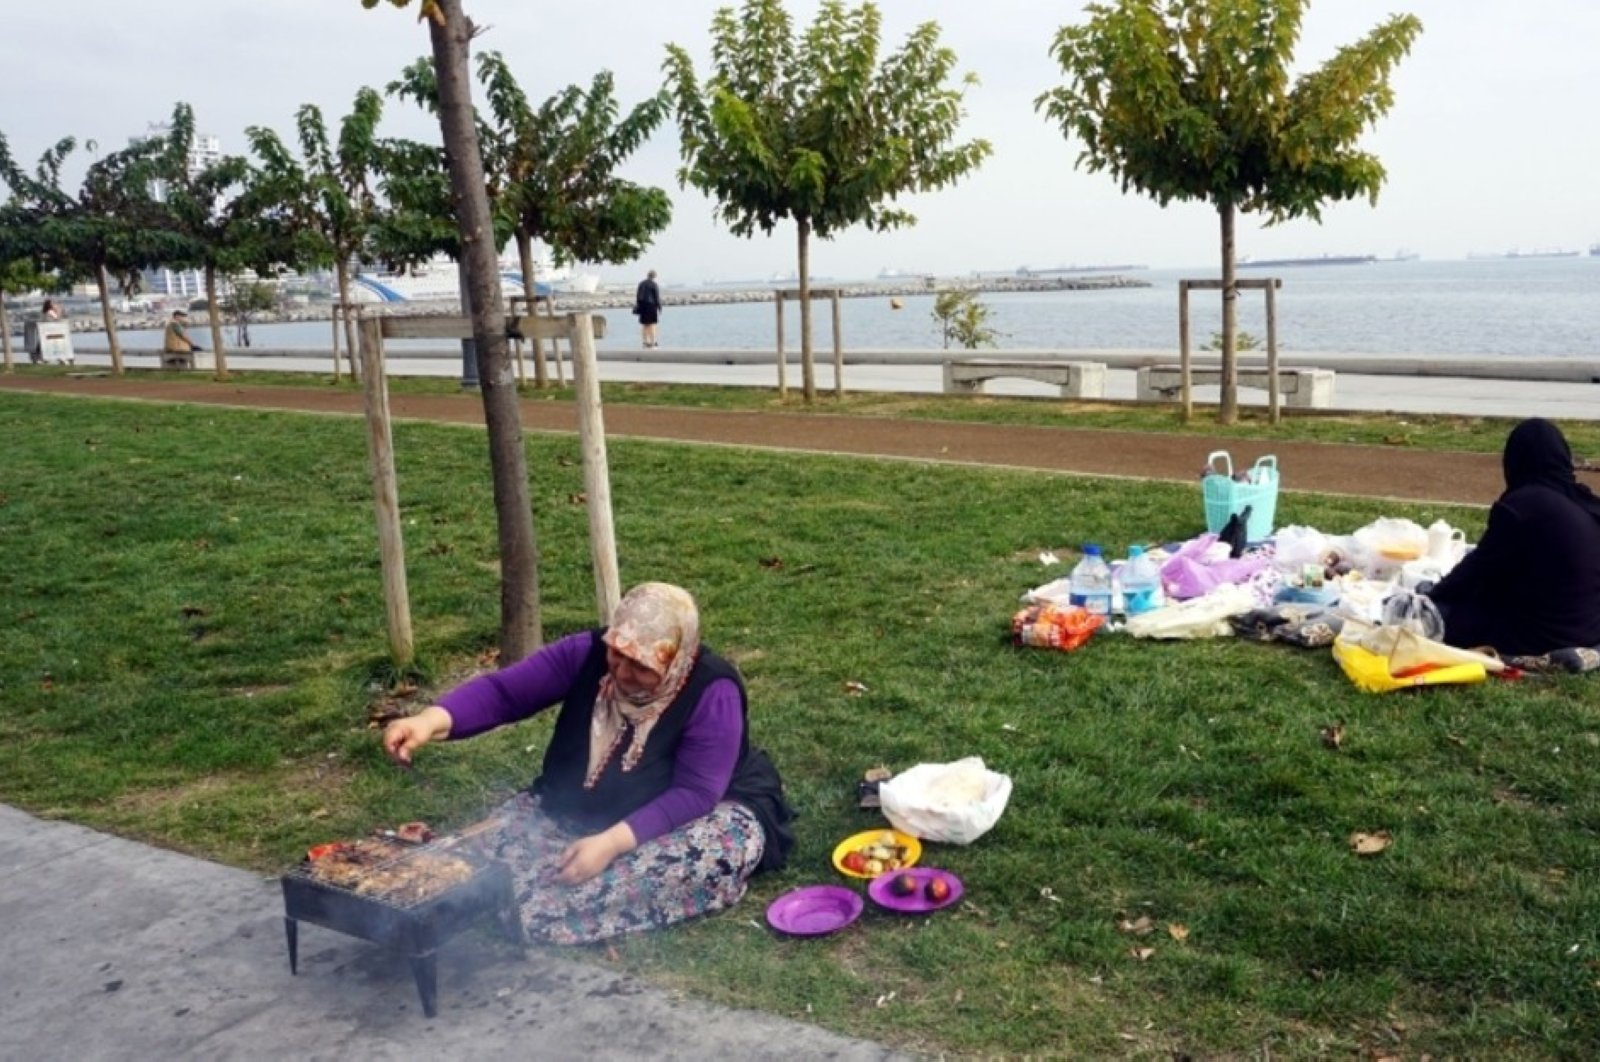 This undated photo shows a woman barbecuing near a seaside promenade in Istanbul. (DHA Photo)